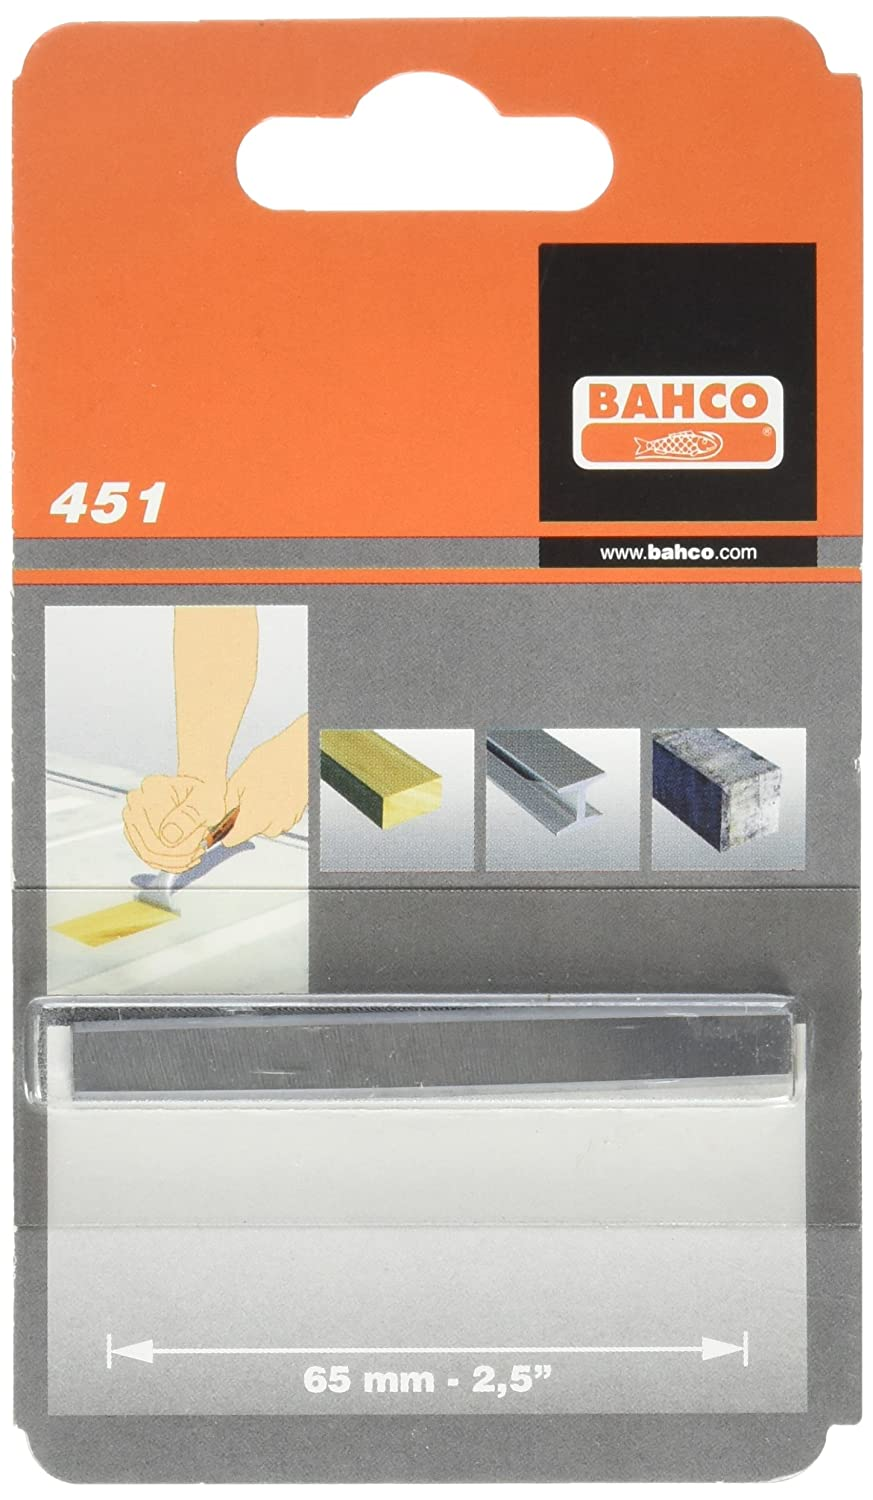 Bahco Heavy Duty 2-1/2-Inch Replacement Scraper Blade #451